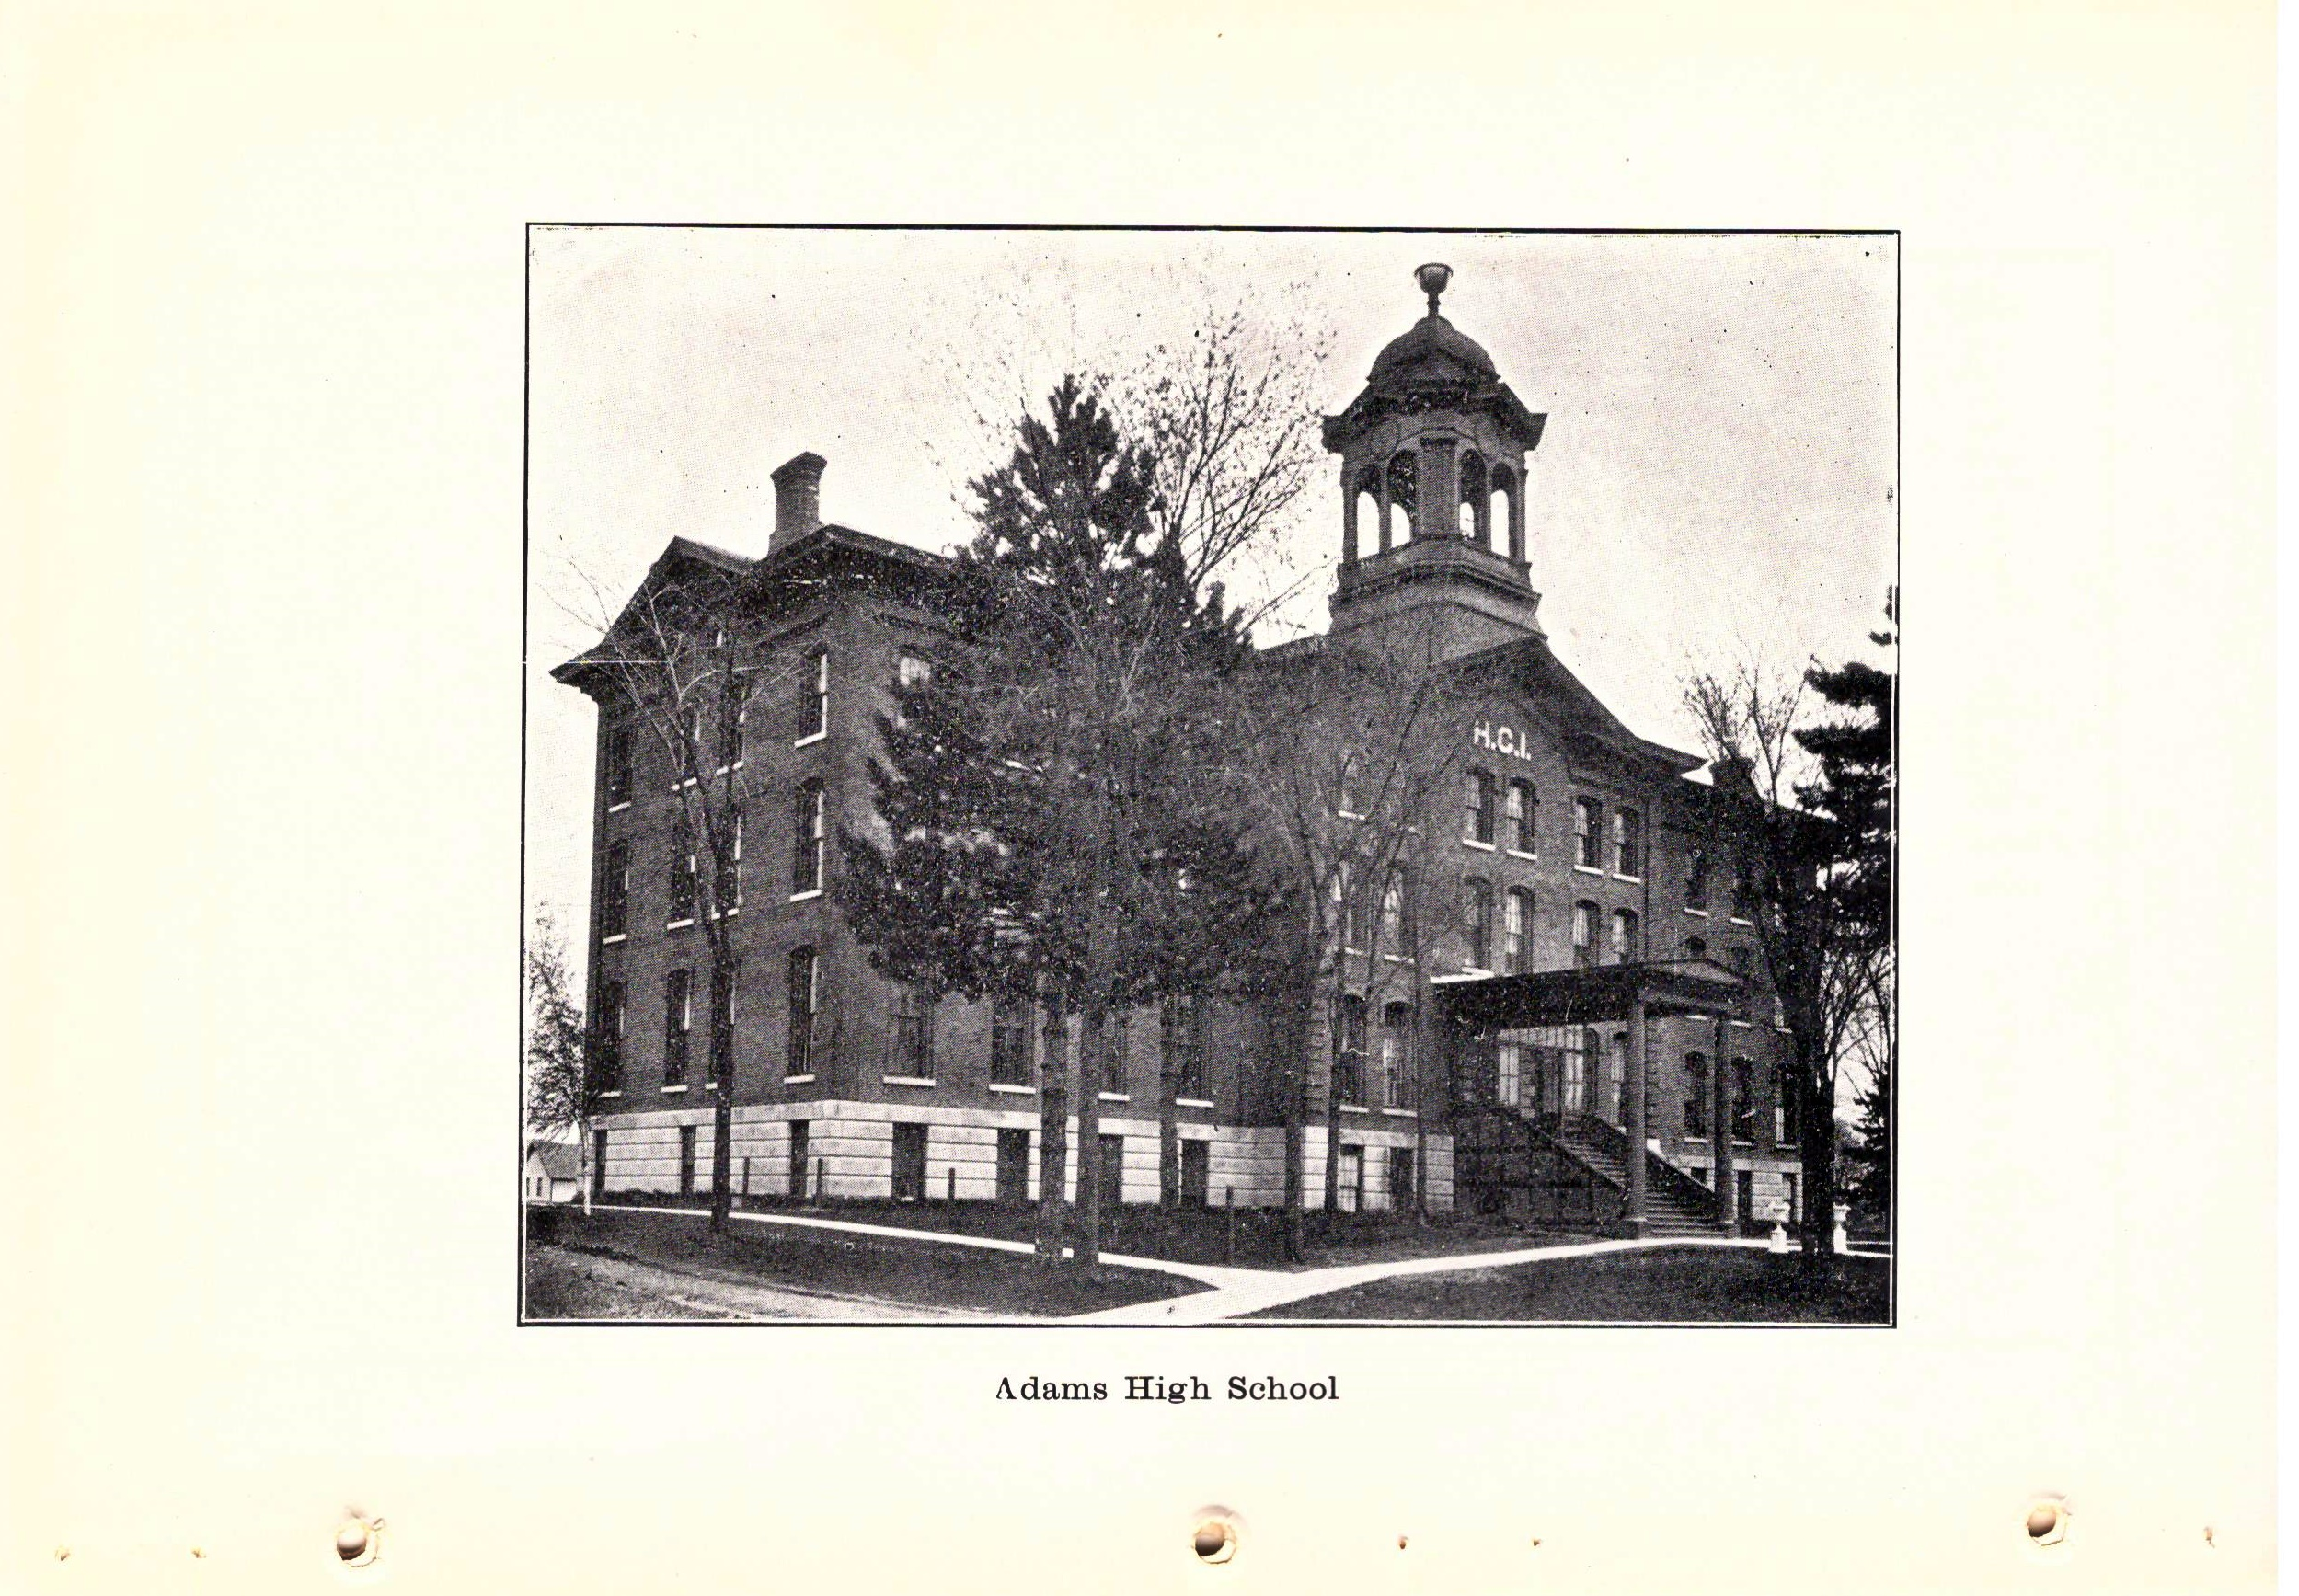 31. ADAMS hIGH  SCHOOL (1)